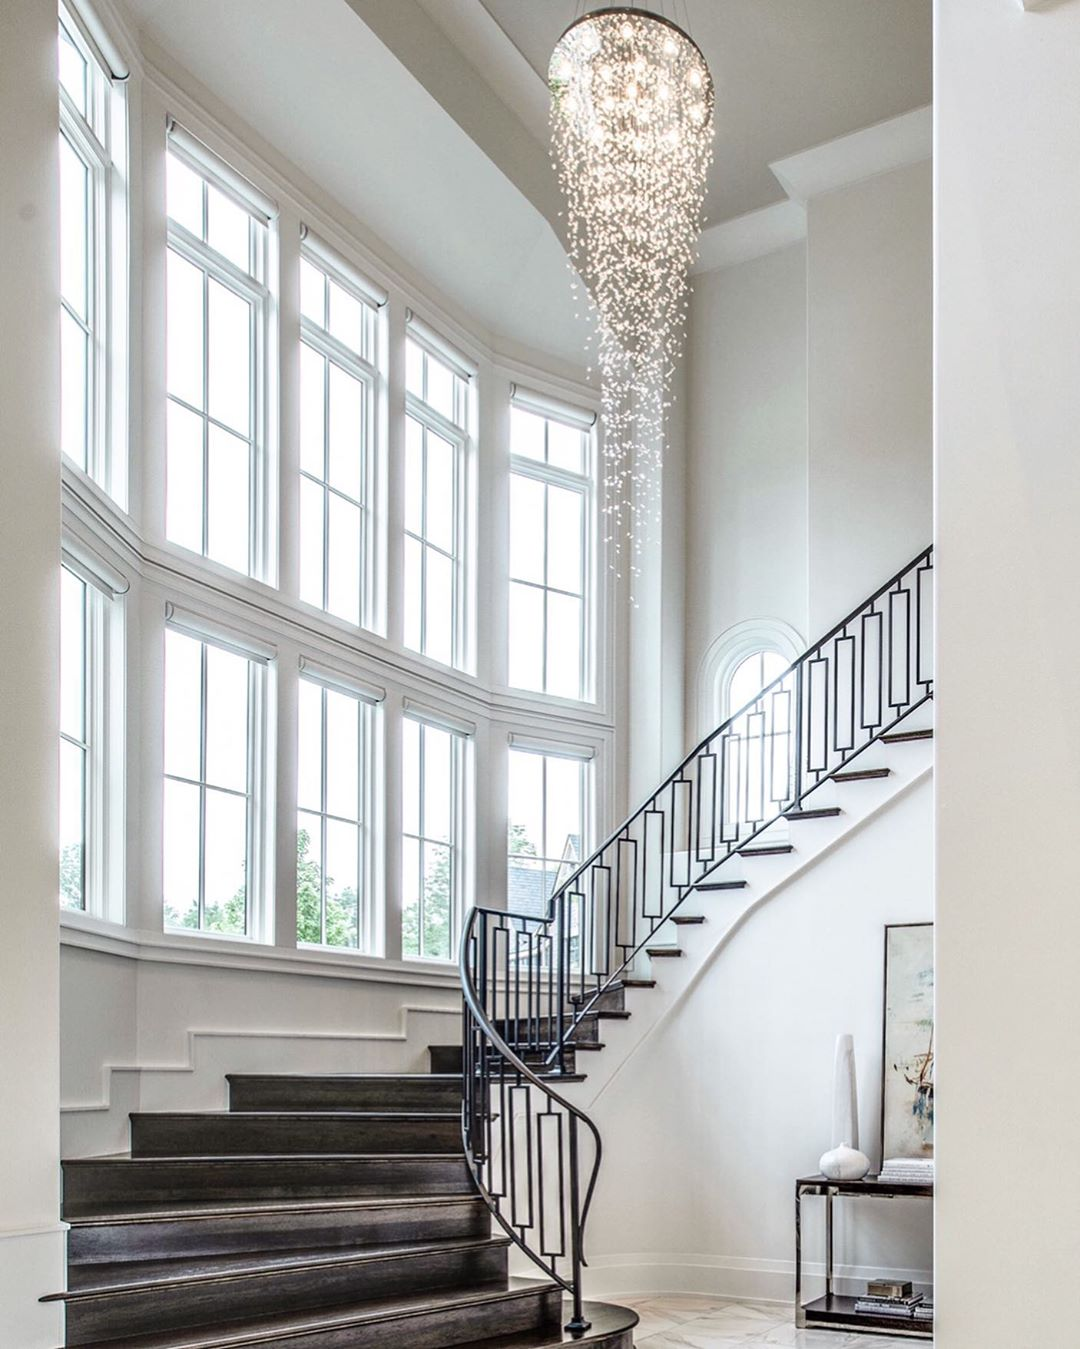 grand staircase overlooking two rows of white fixed windows bringing in natural light